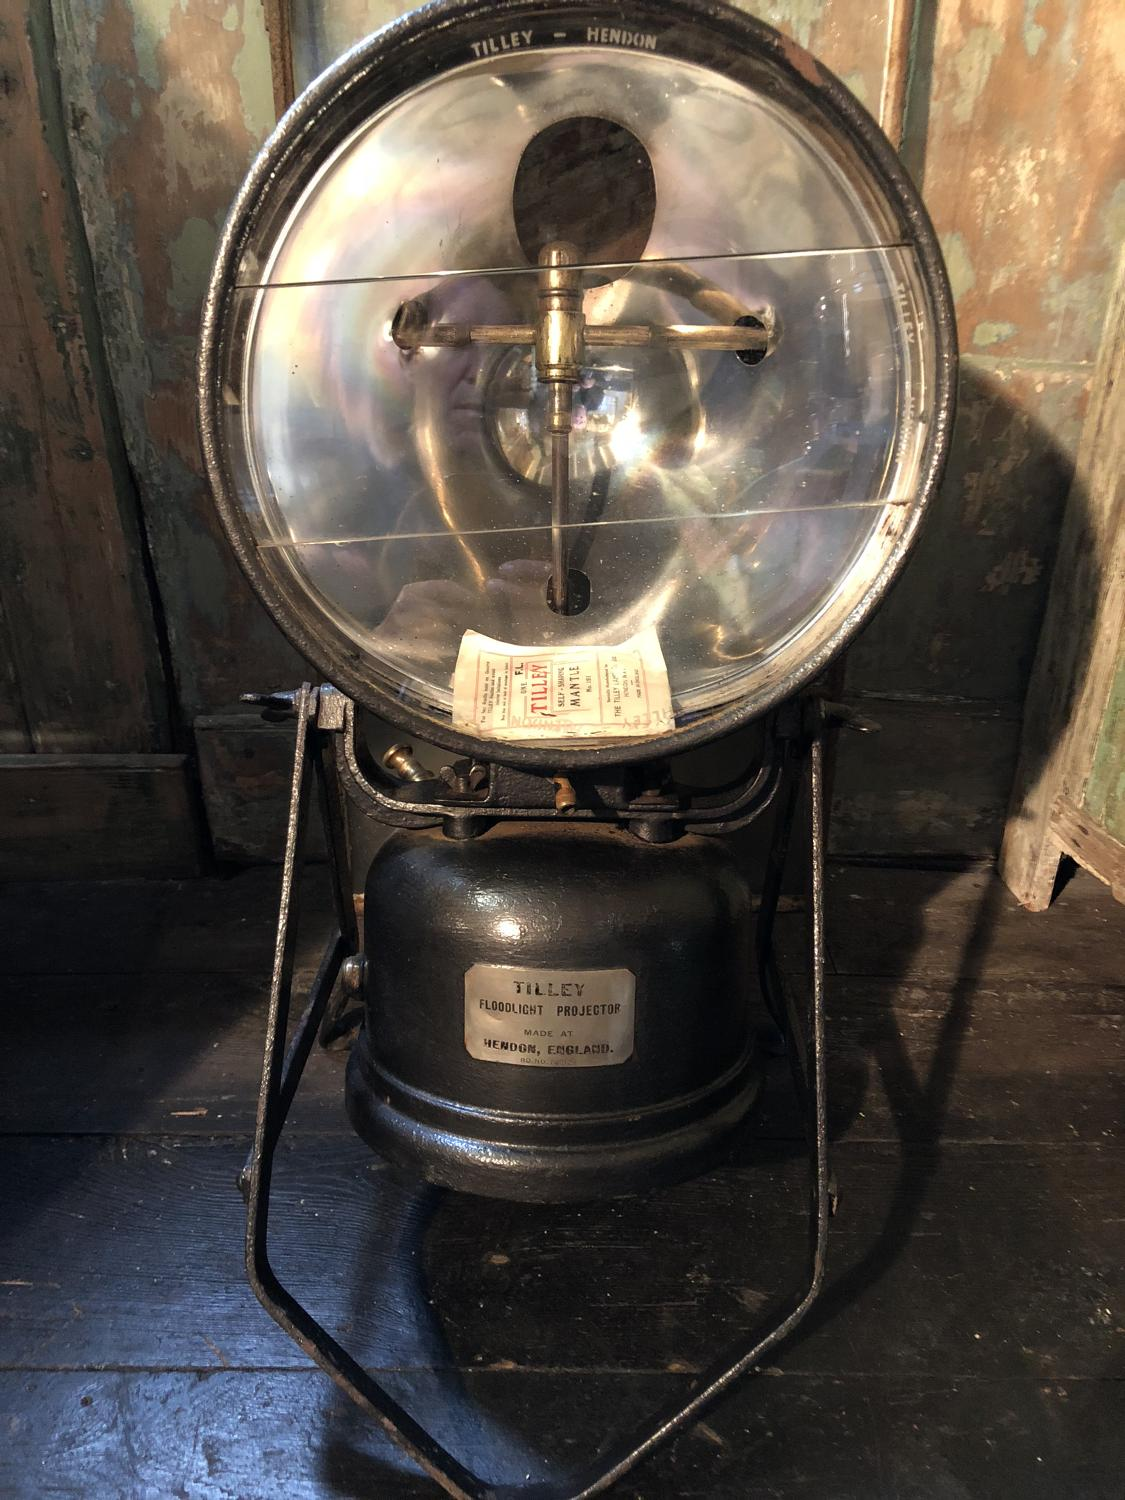 WW2 Tilley Lamp for temporary aircraft landing strip